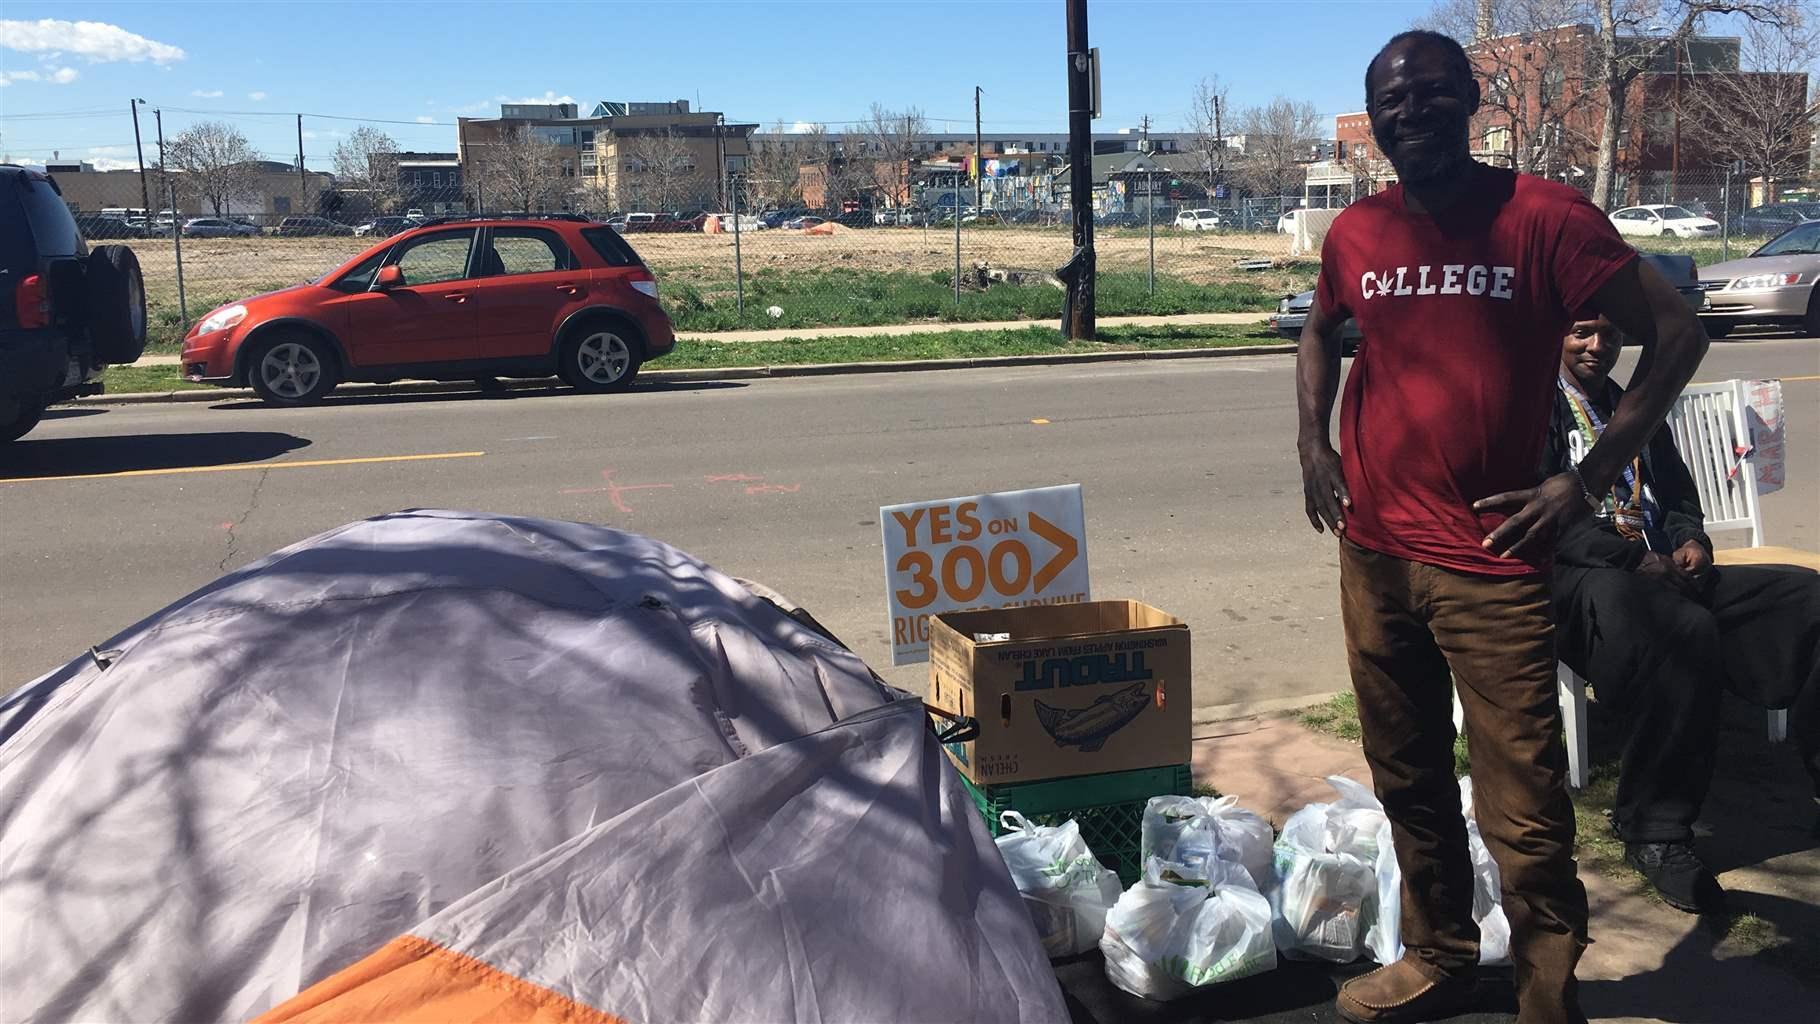 This City Might Give Homeless People the Right to Camp Anywhere